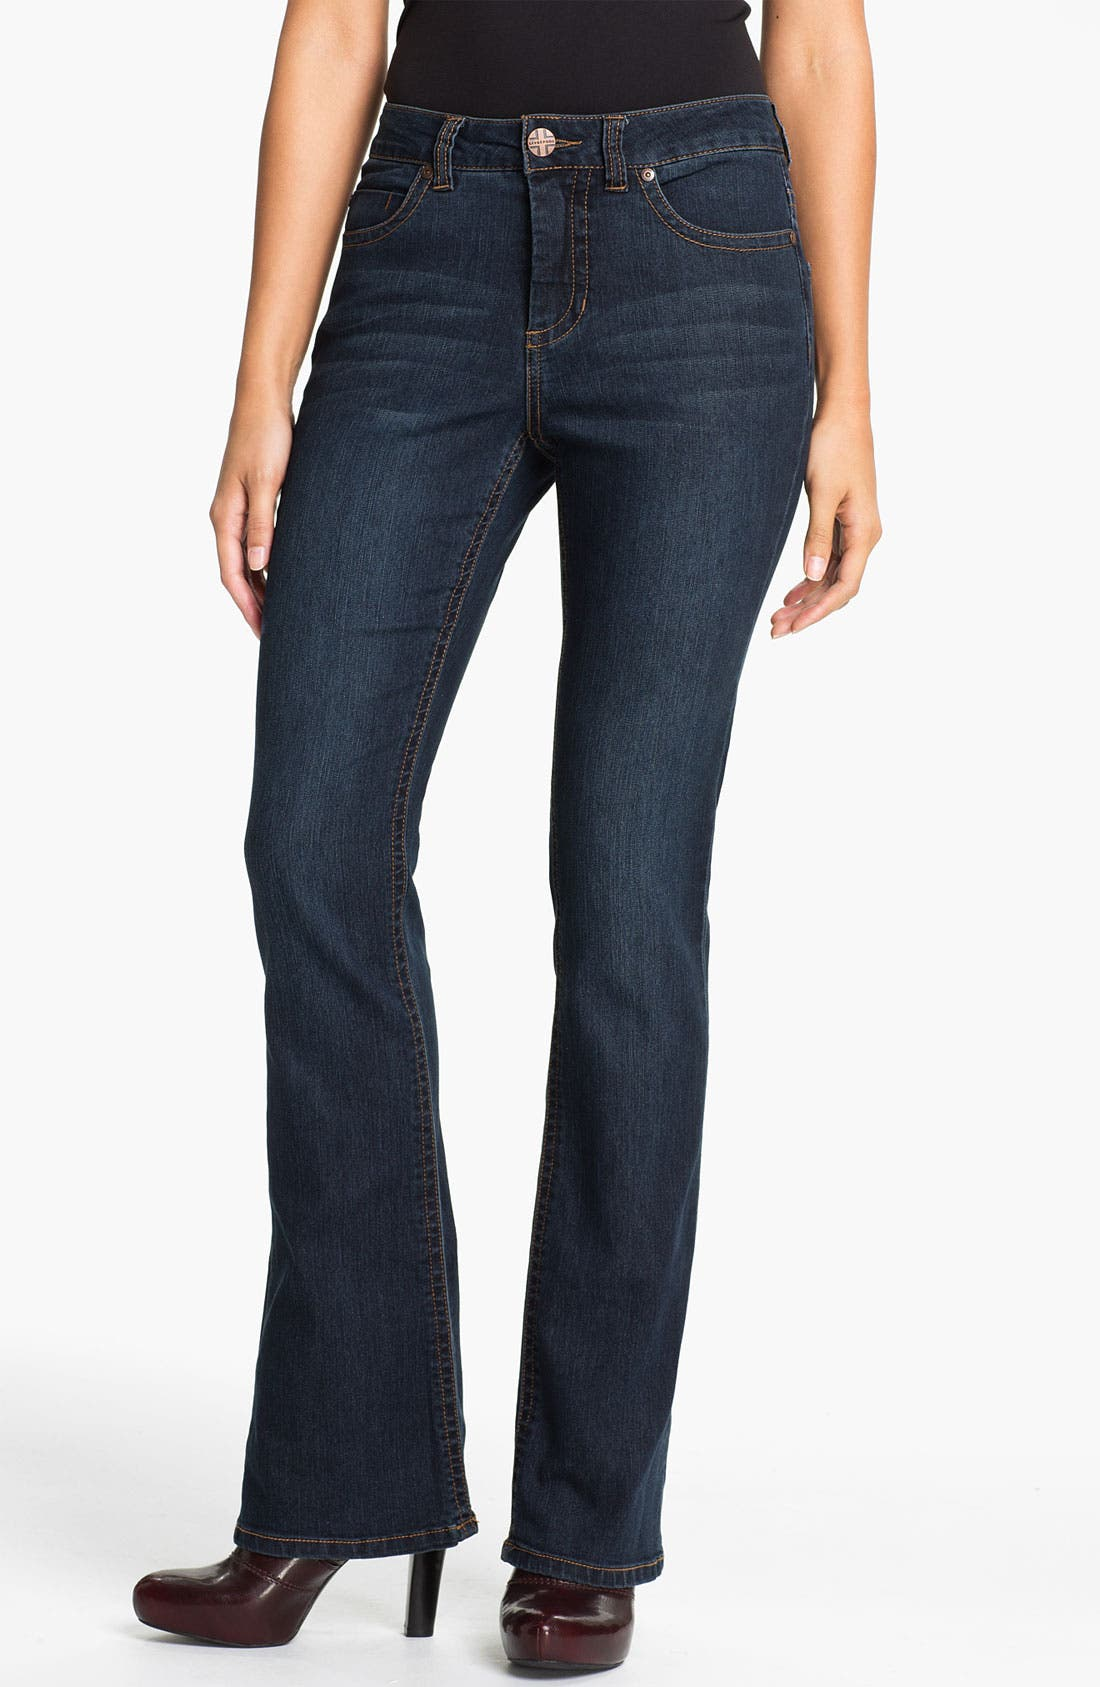 Alternate Image 1 Selected - Liverpool Jeans Company 'Lucy - Brit' Bootcut Stretch Jeans (Petite)